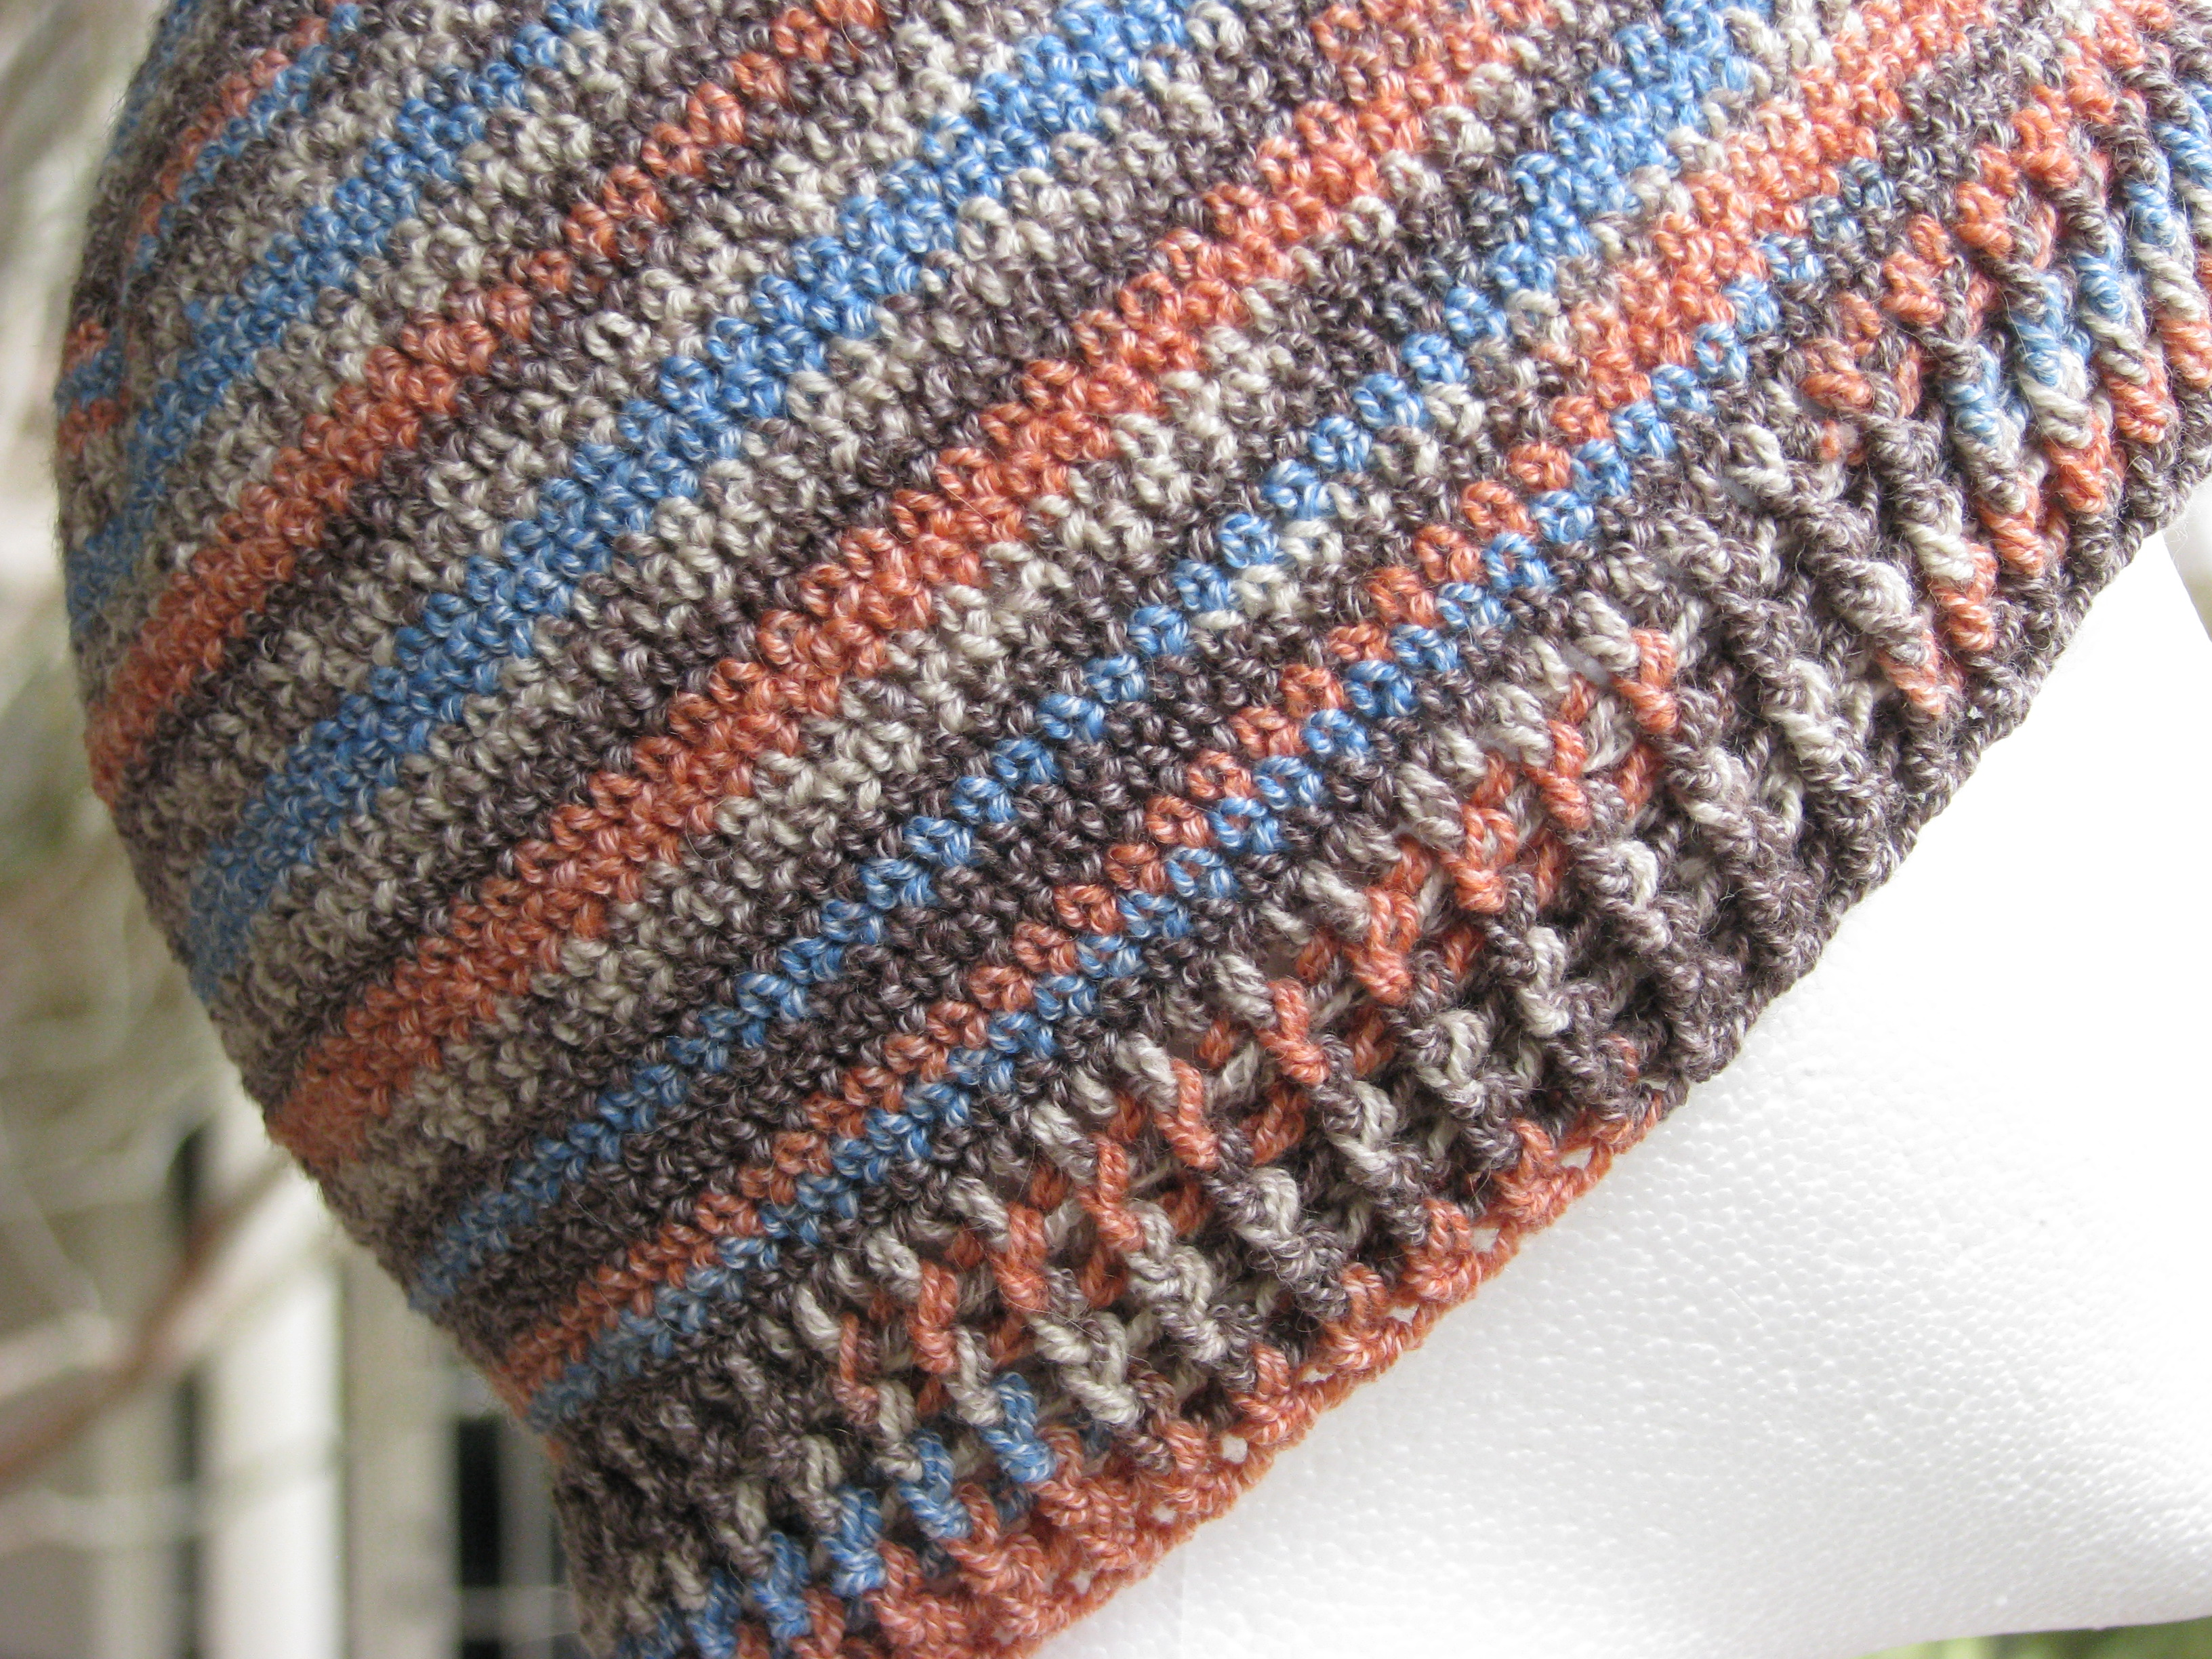 Knitting Lifeline After The Fact : Tutorial crochet sock yarn hat sheepishly sharing